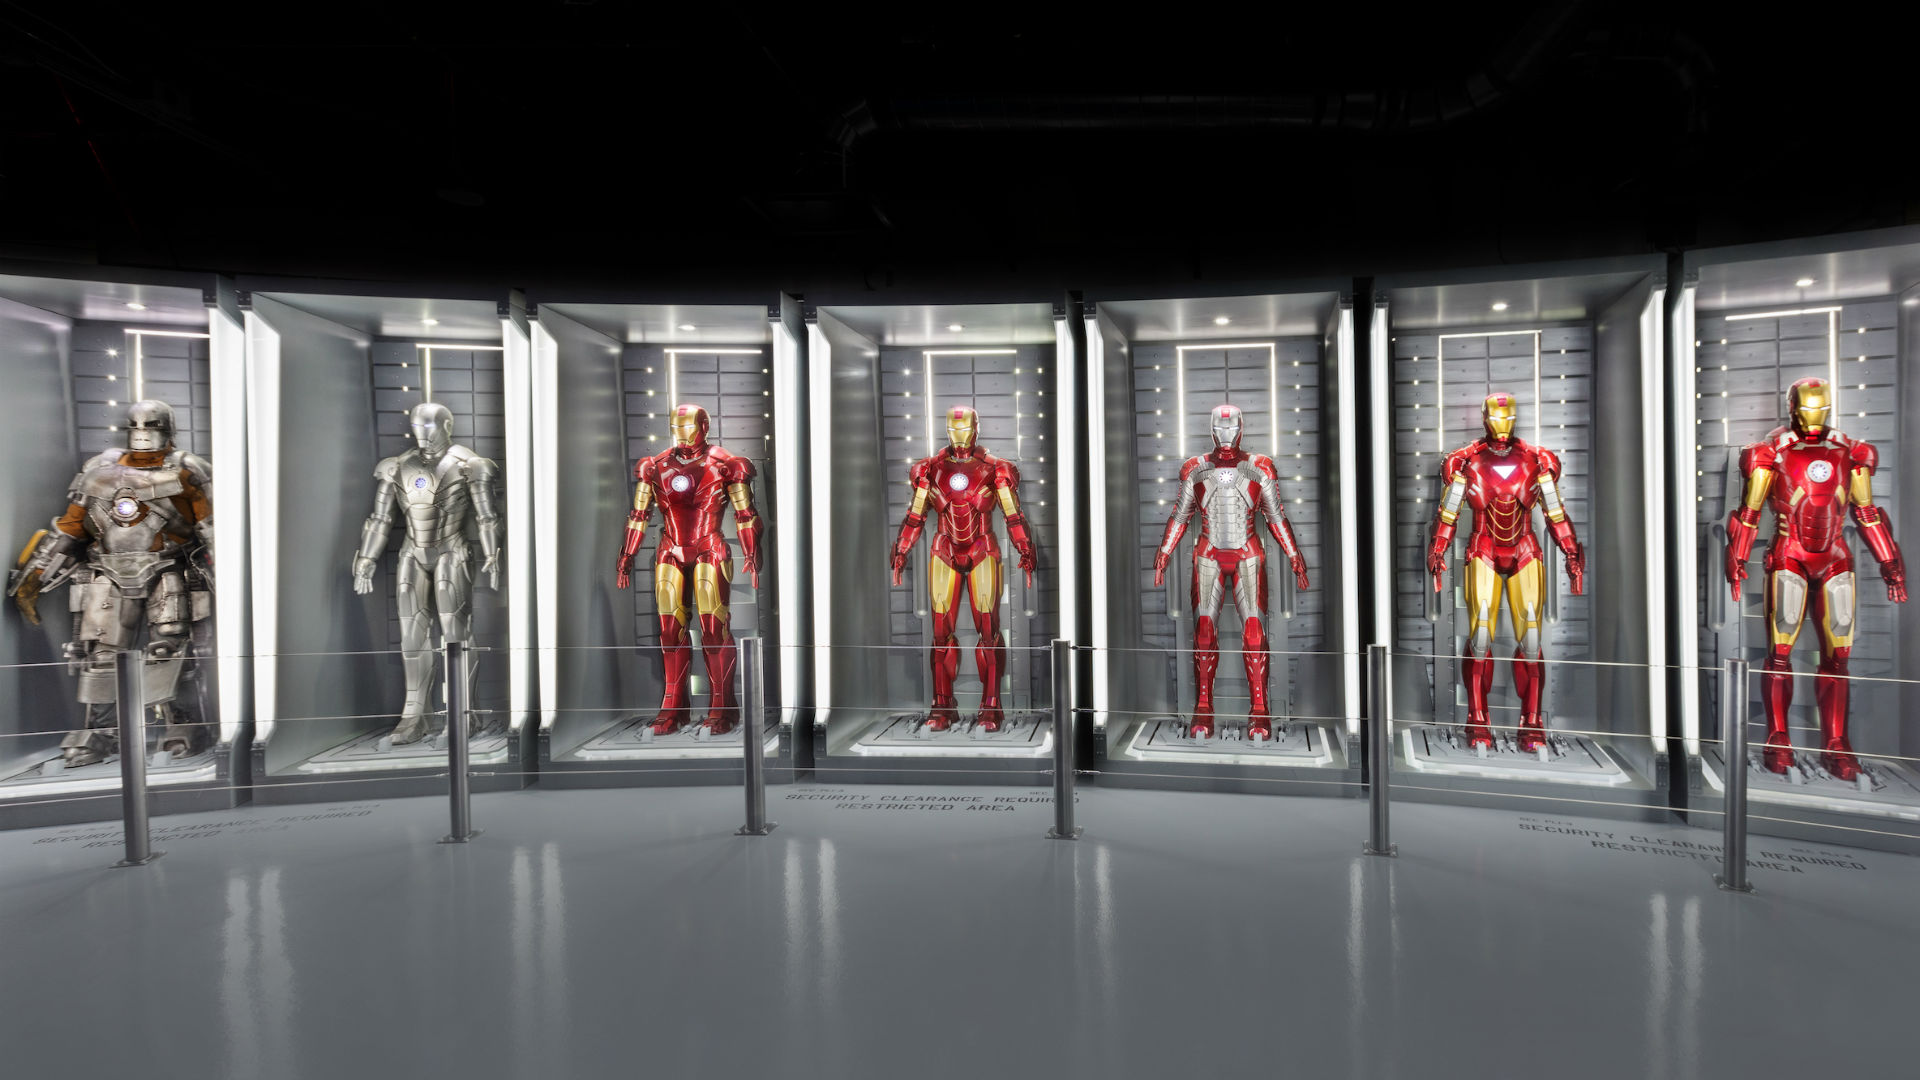 Seven tall display cabinets with seven different superhero outfits displayed within